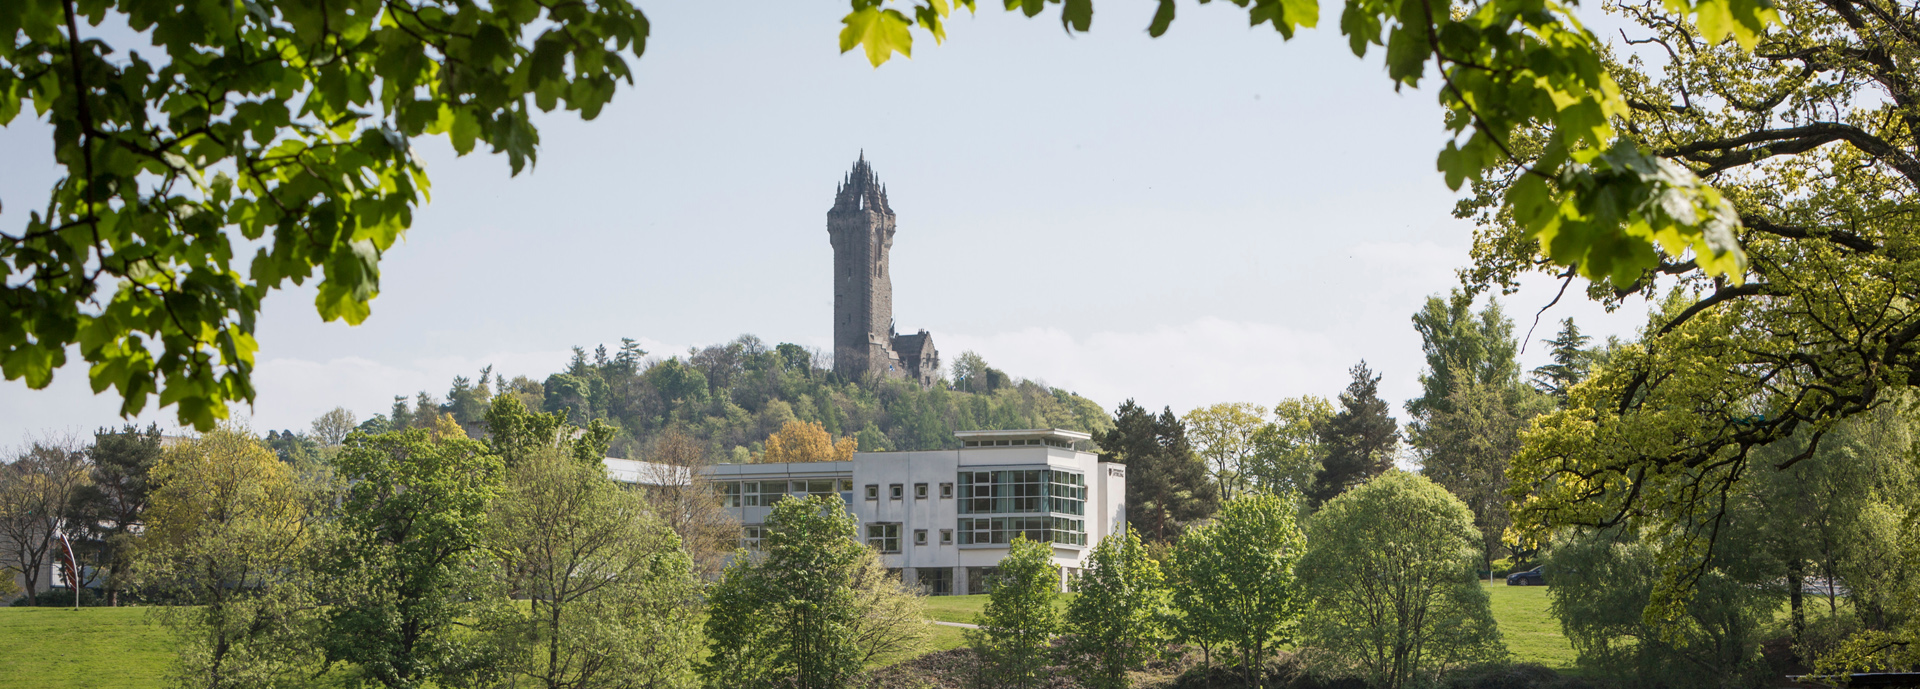 university campus wallace monument